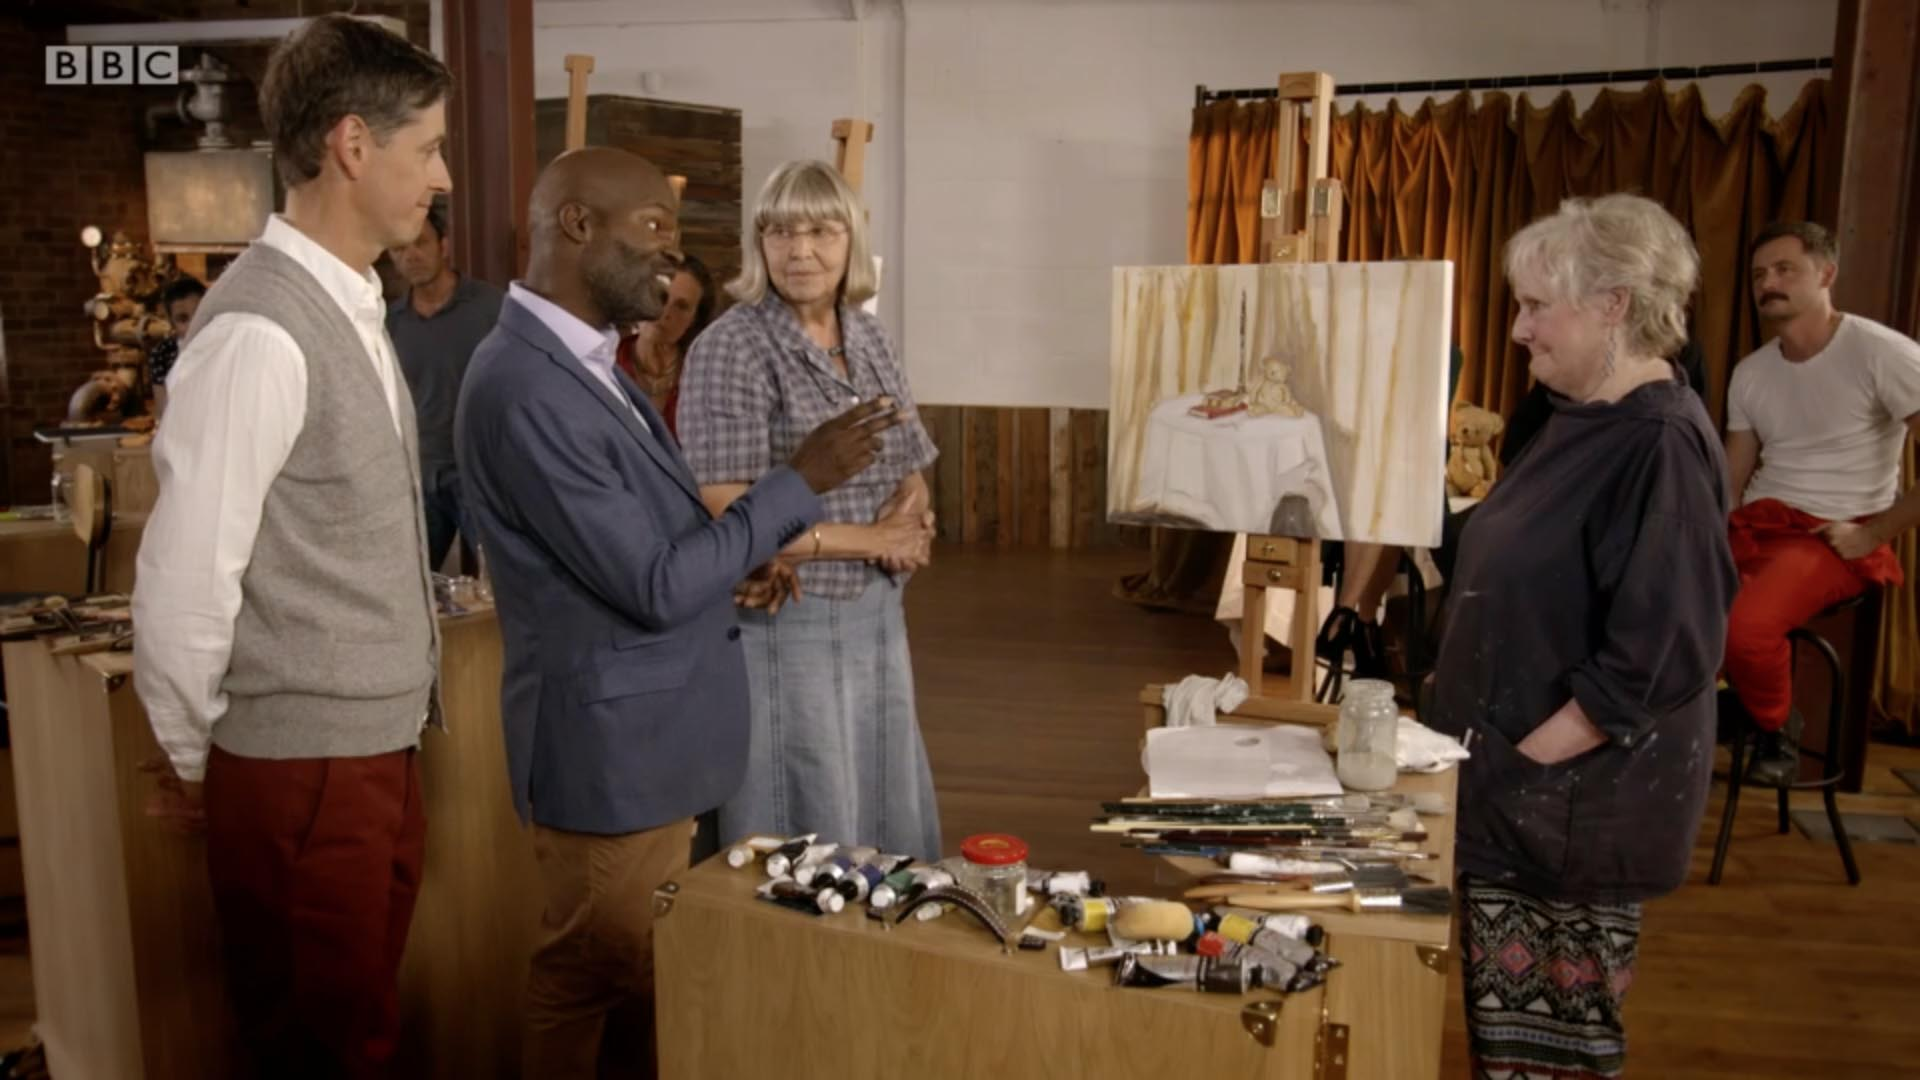 David Dibosa (second from left) reflects on a contestant's work on BBC One's Big Painting Challenge on Sunday 12 February 2017.